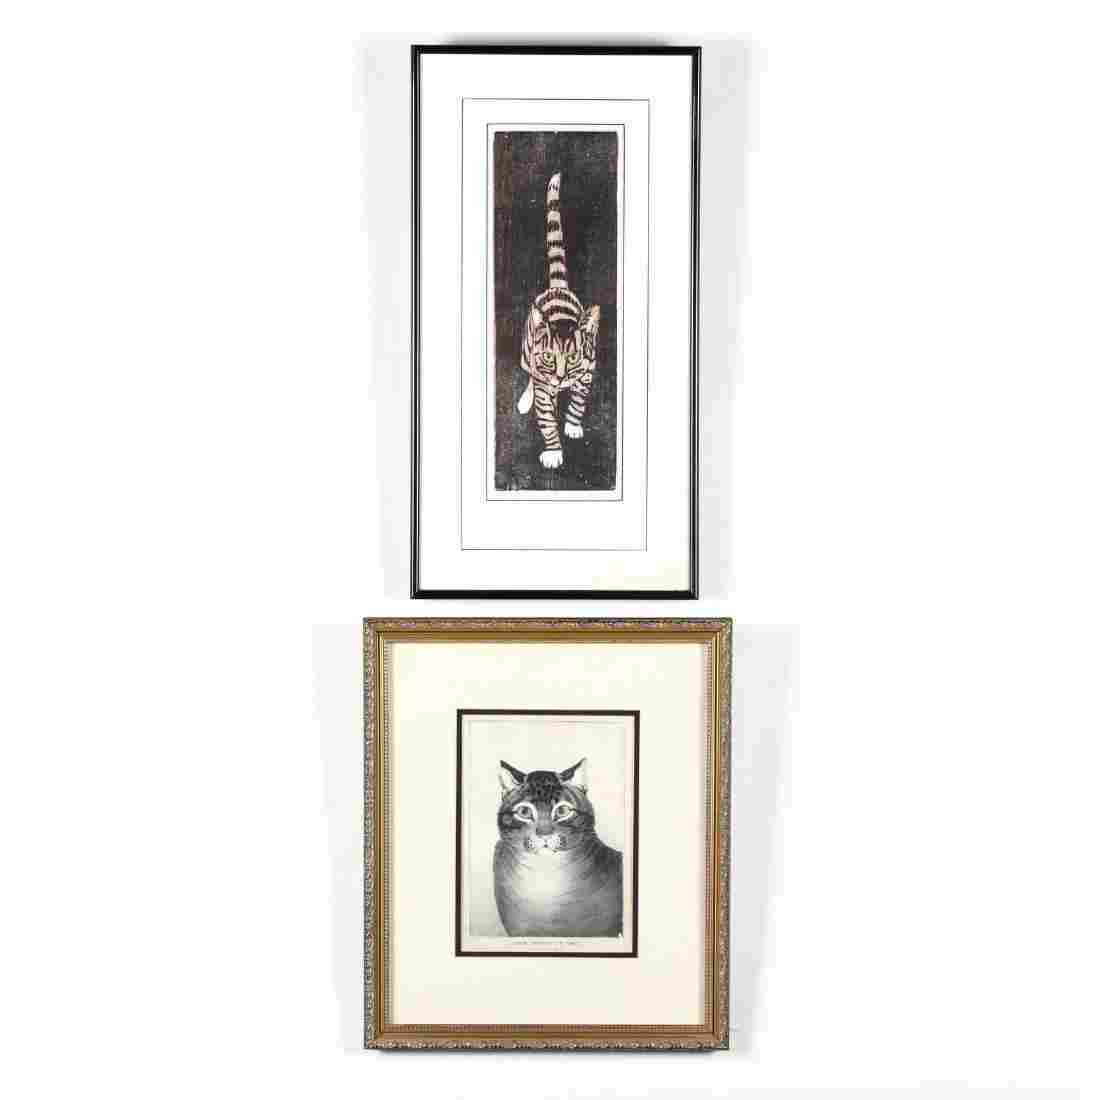 Two Graphic Works Picturing Cats